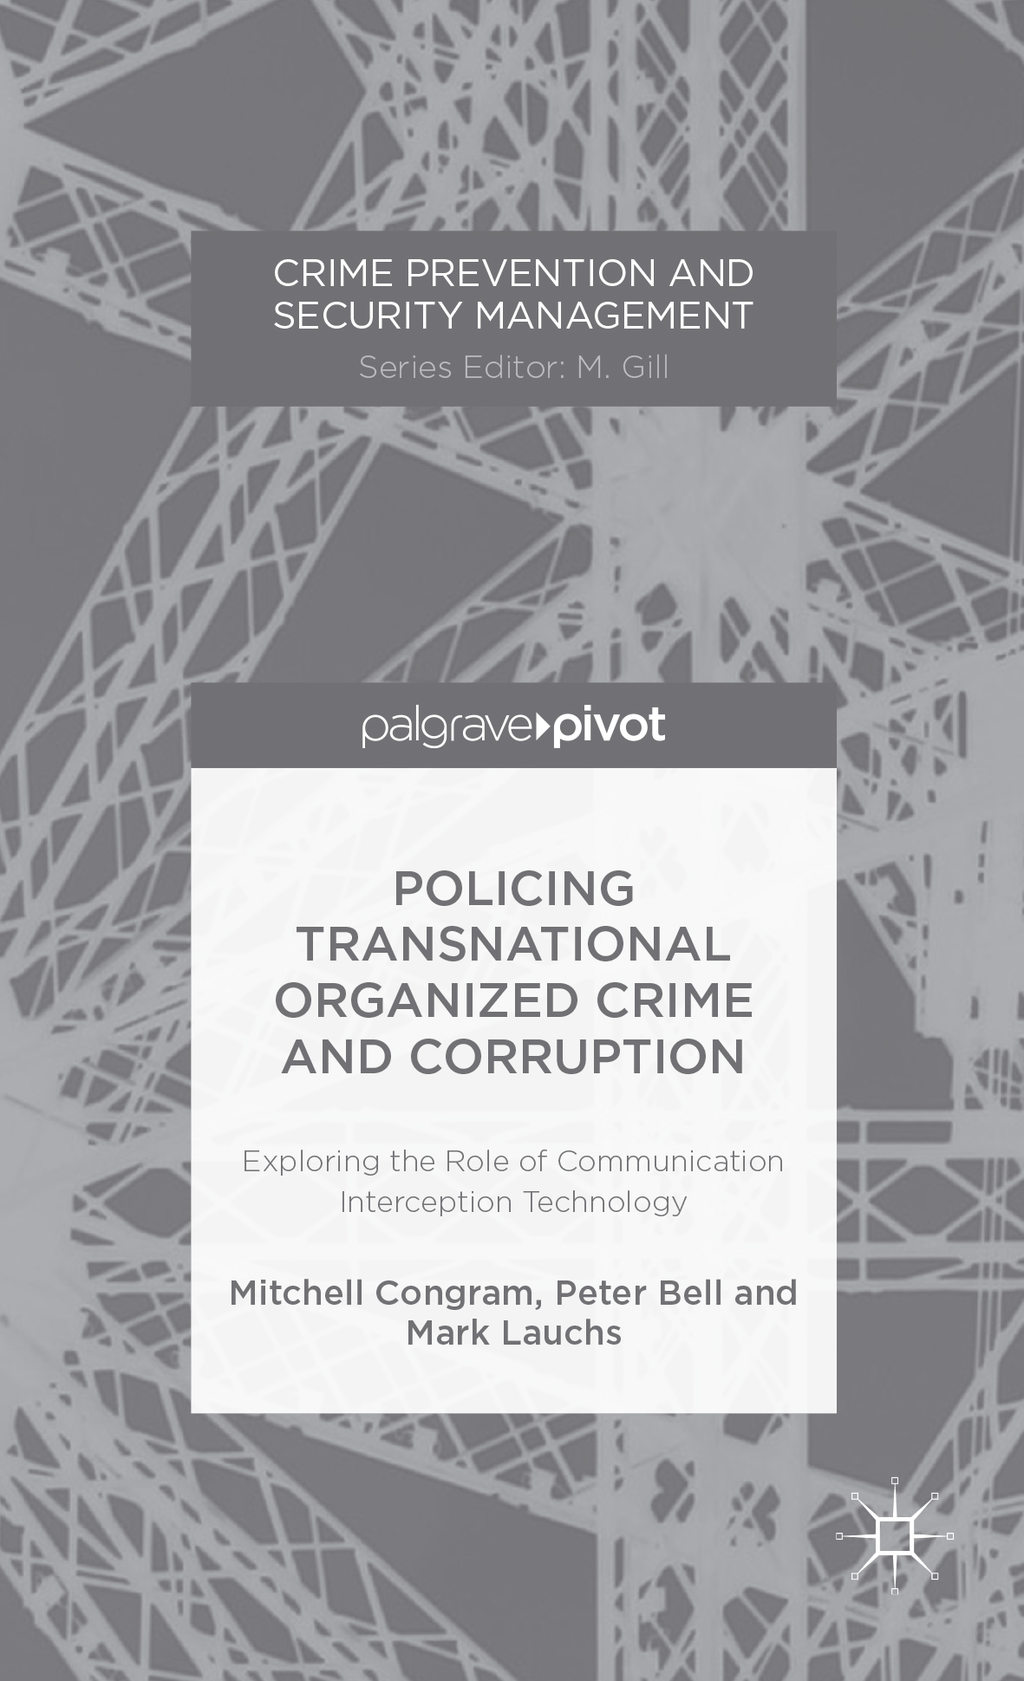 Policing Transnational Organized Crime and Corruption Exploring the Role of Communication Interception Technology